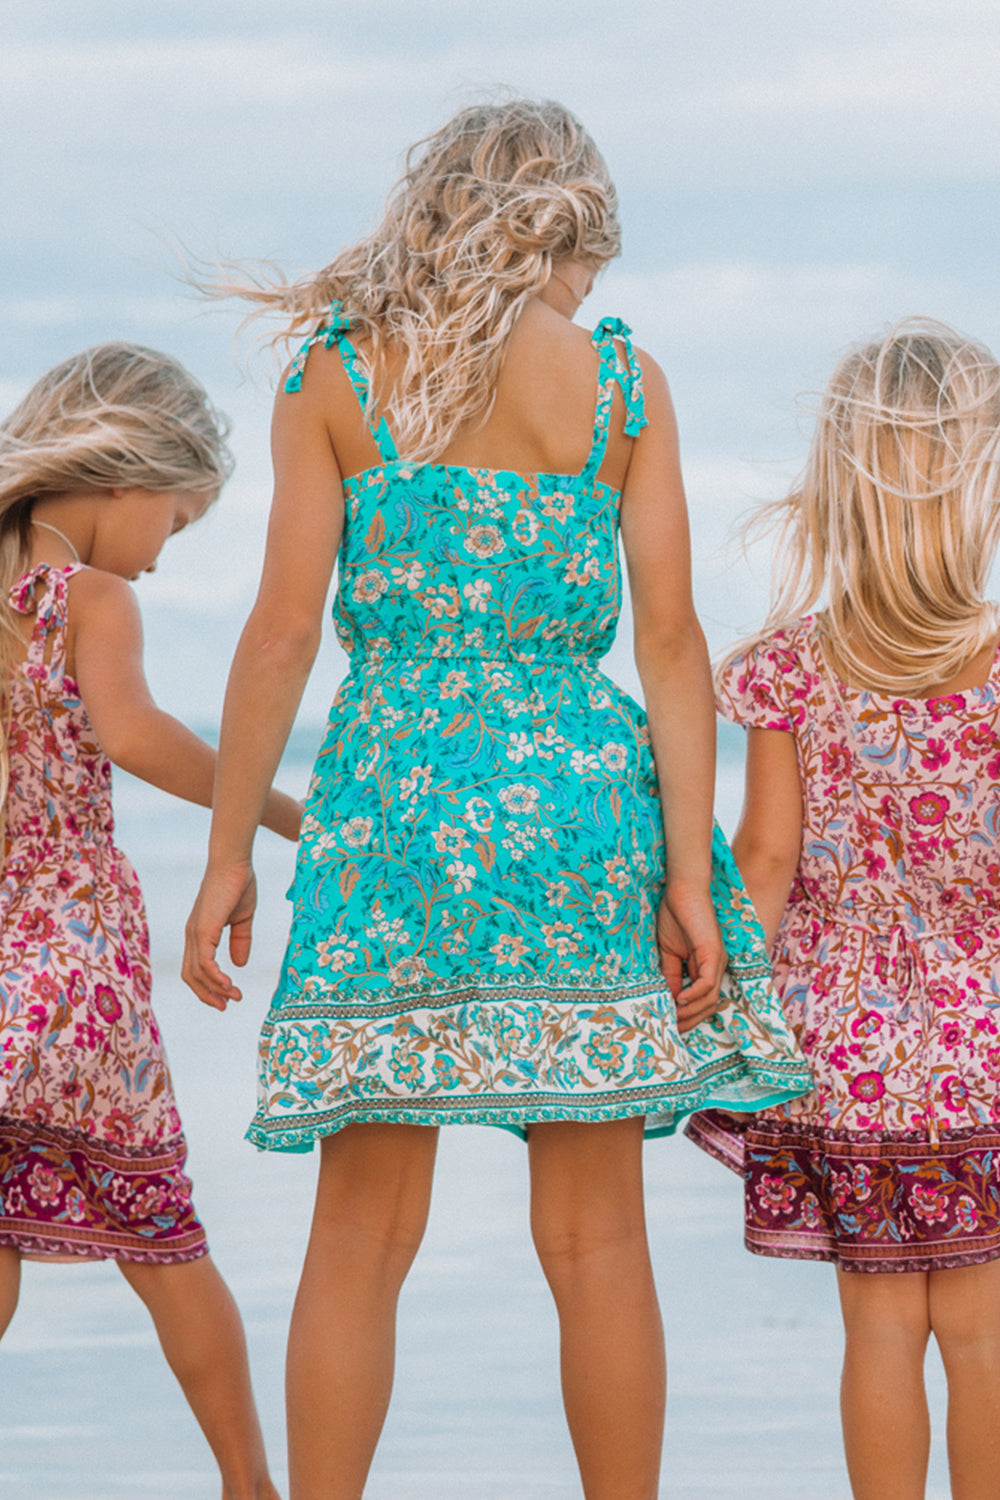 Daisy Chain Littles Dress in Poolside